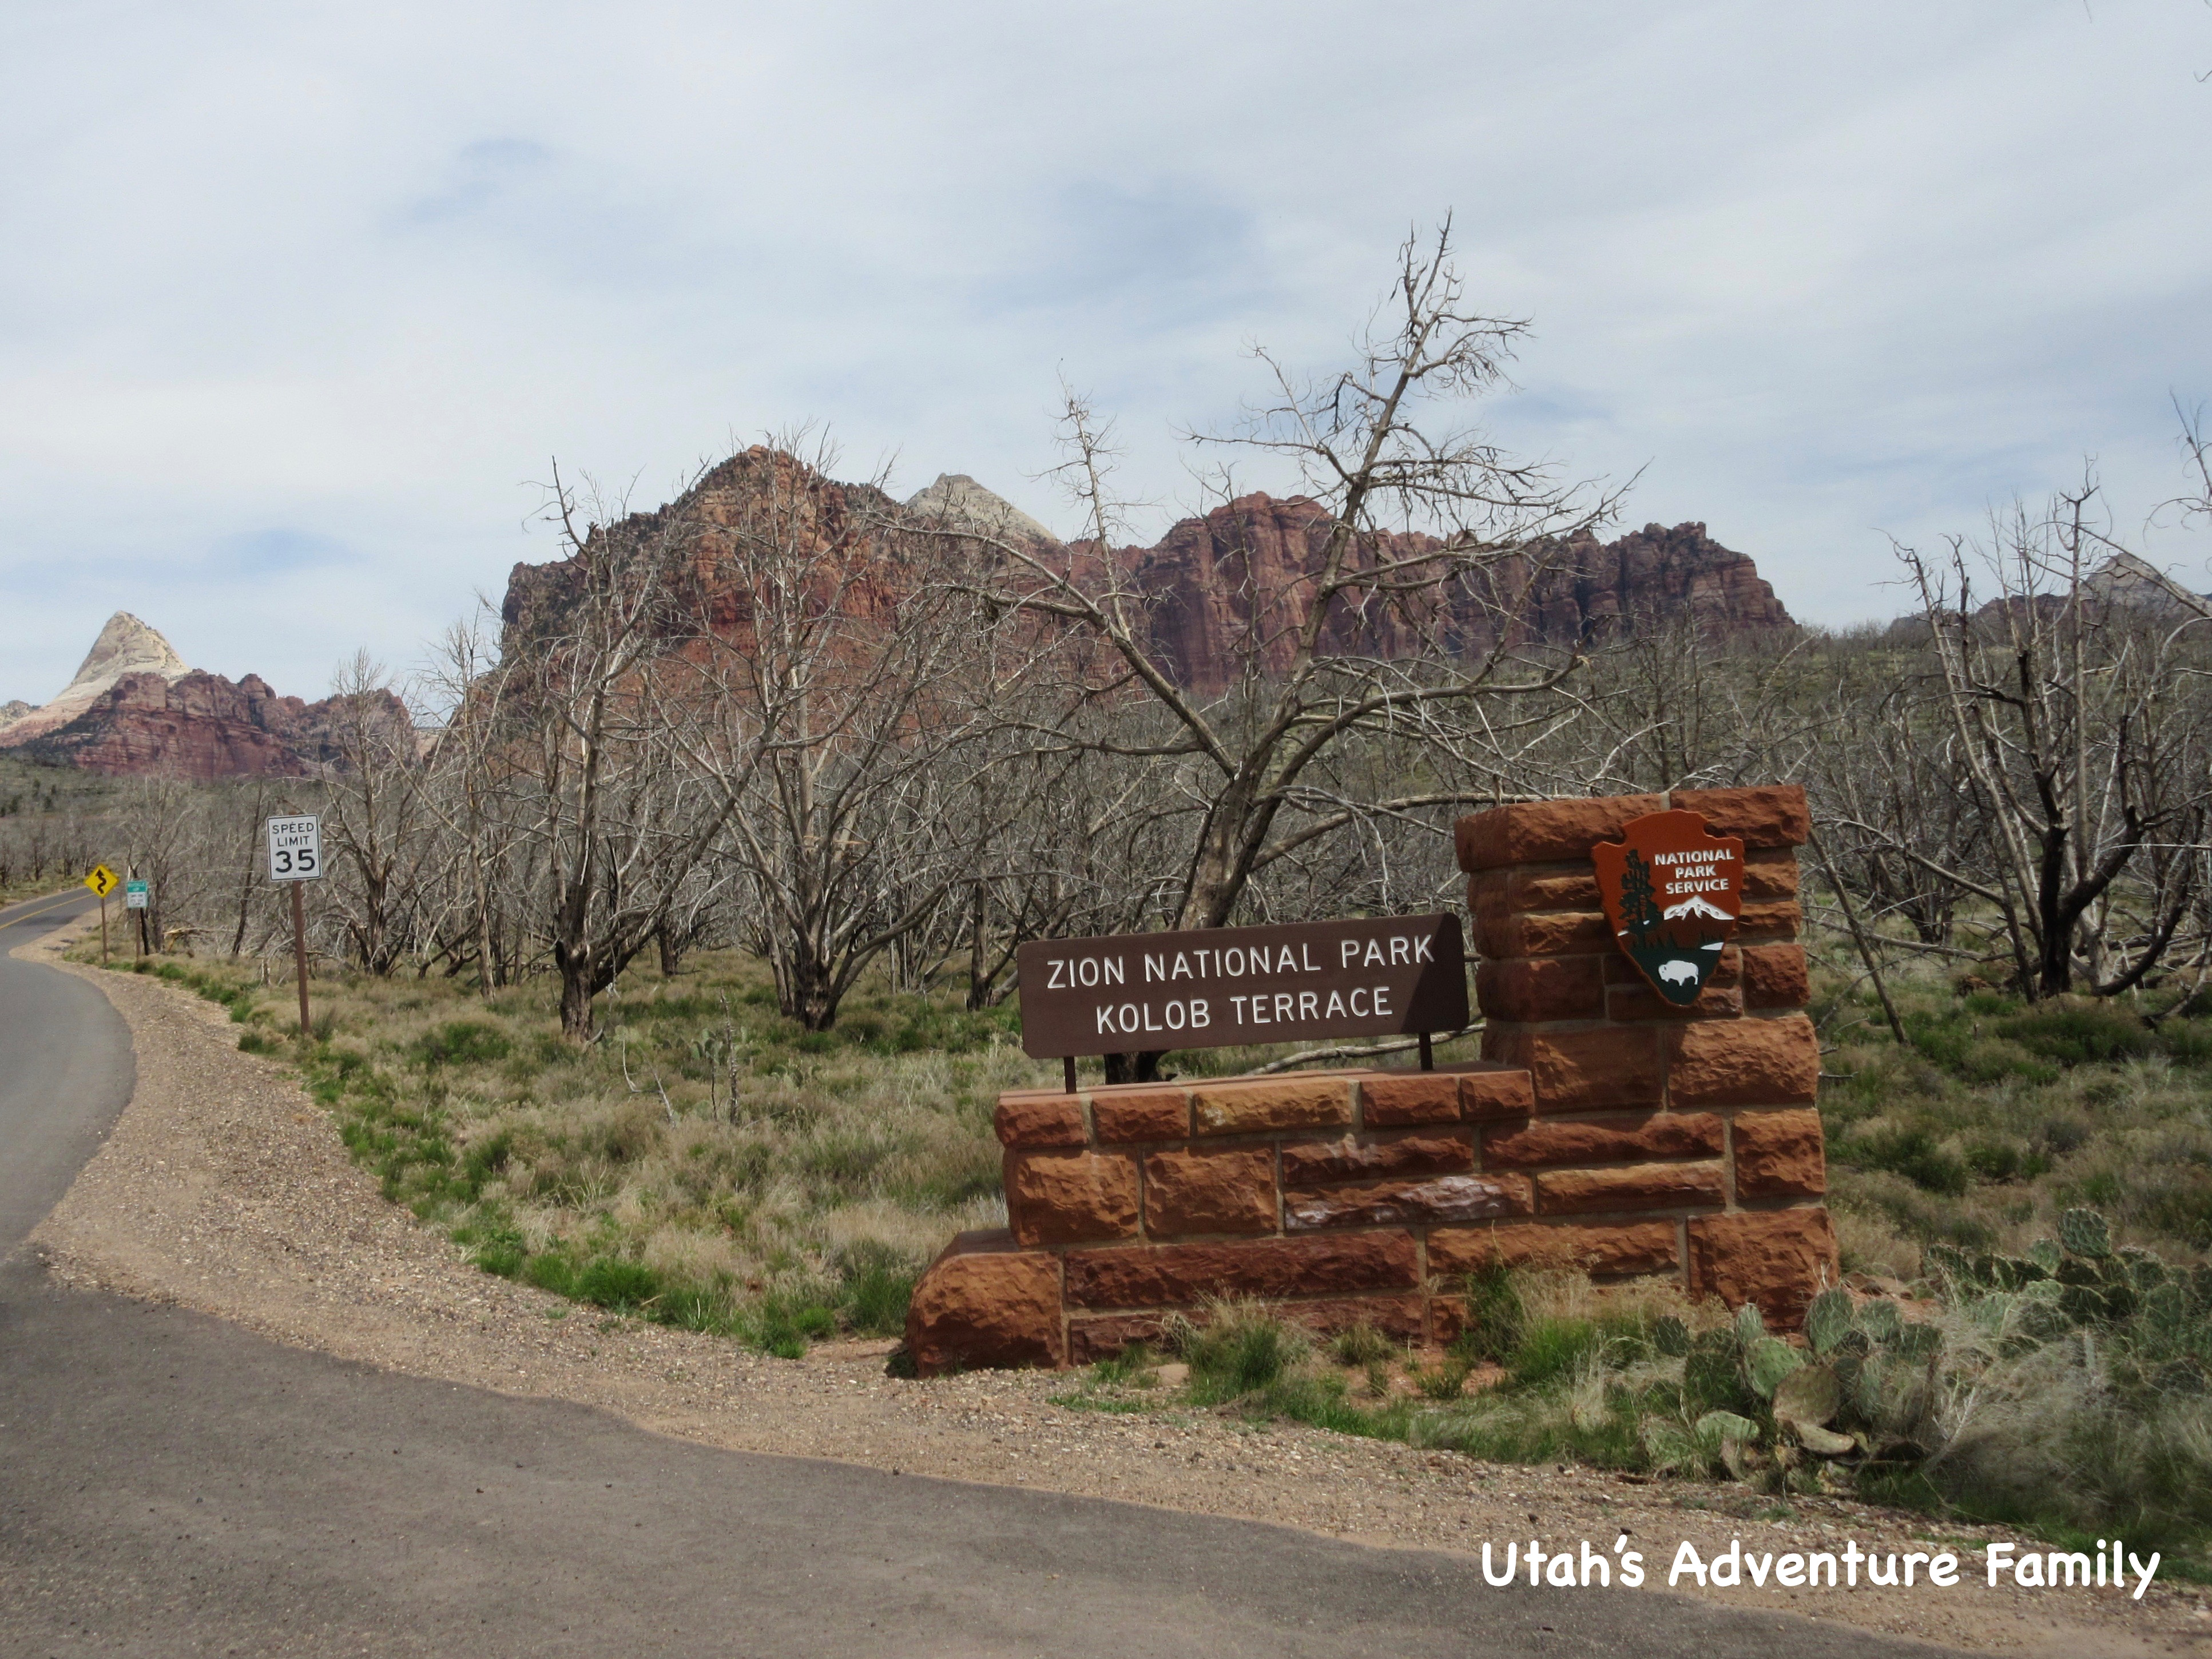 hiking utah national rugged the park in of spas zion cabins